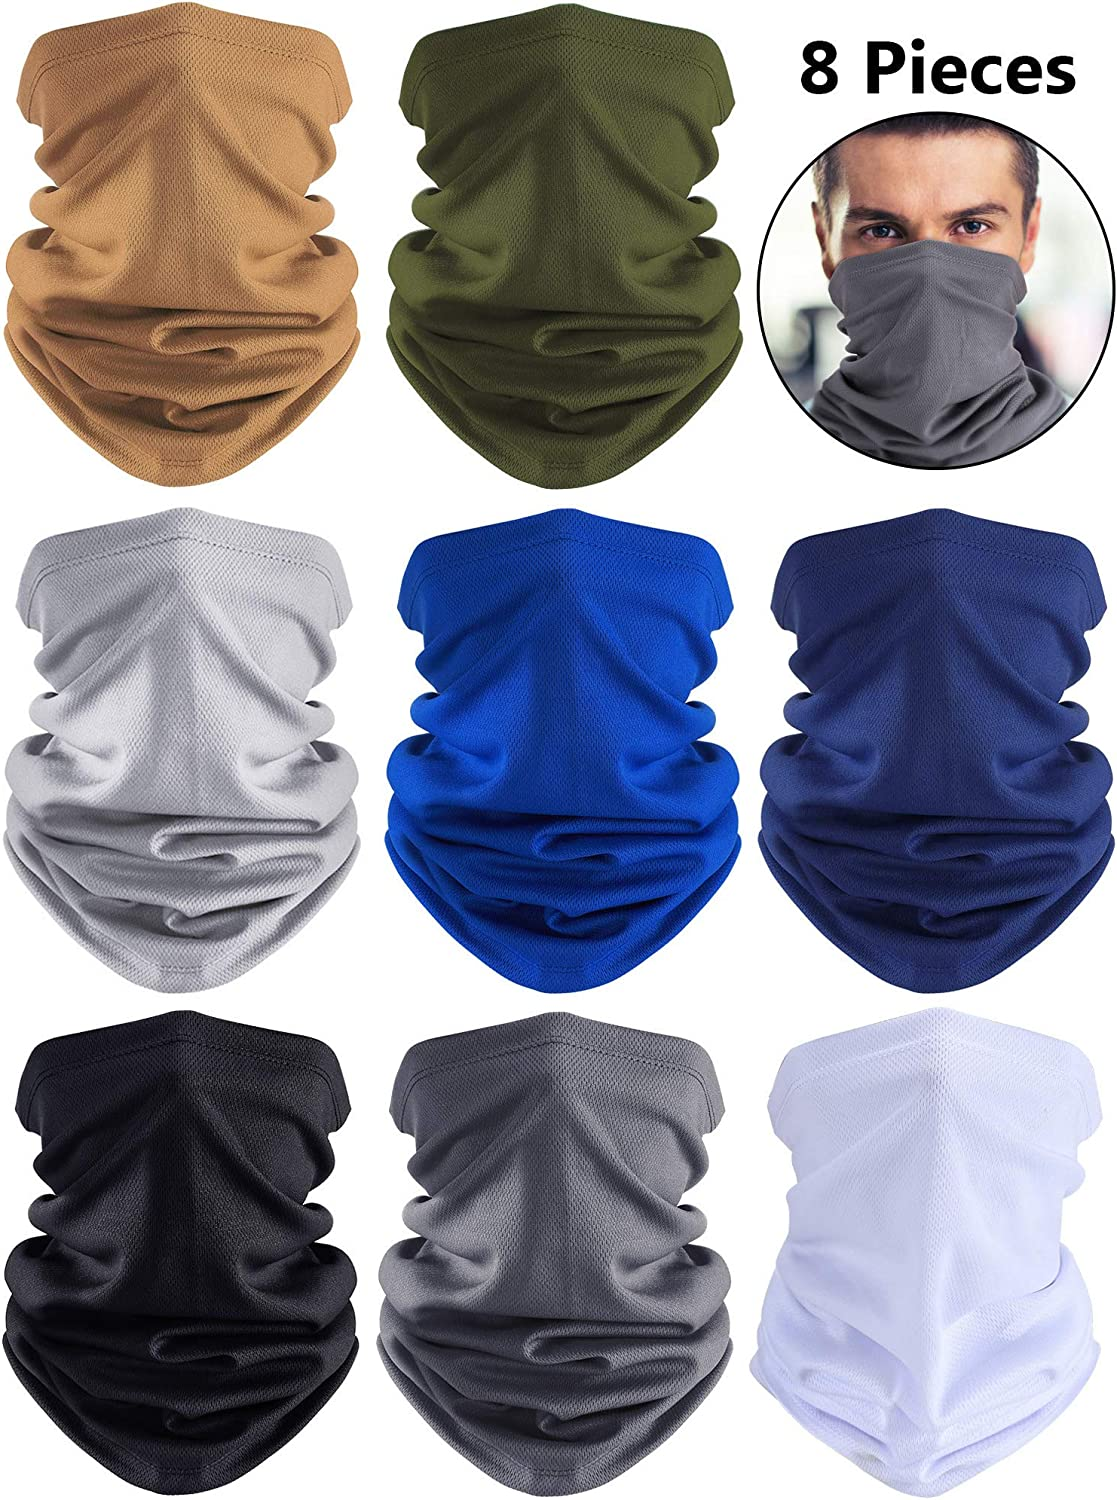 Summer UV Protection Neck Gaiter Scarf Balaclava Breathable Face Cover Scarf (Black, Grey, Blue, White, Khaki, Dark Grey, Navy Blue, Army Green, 8)